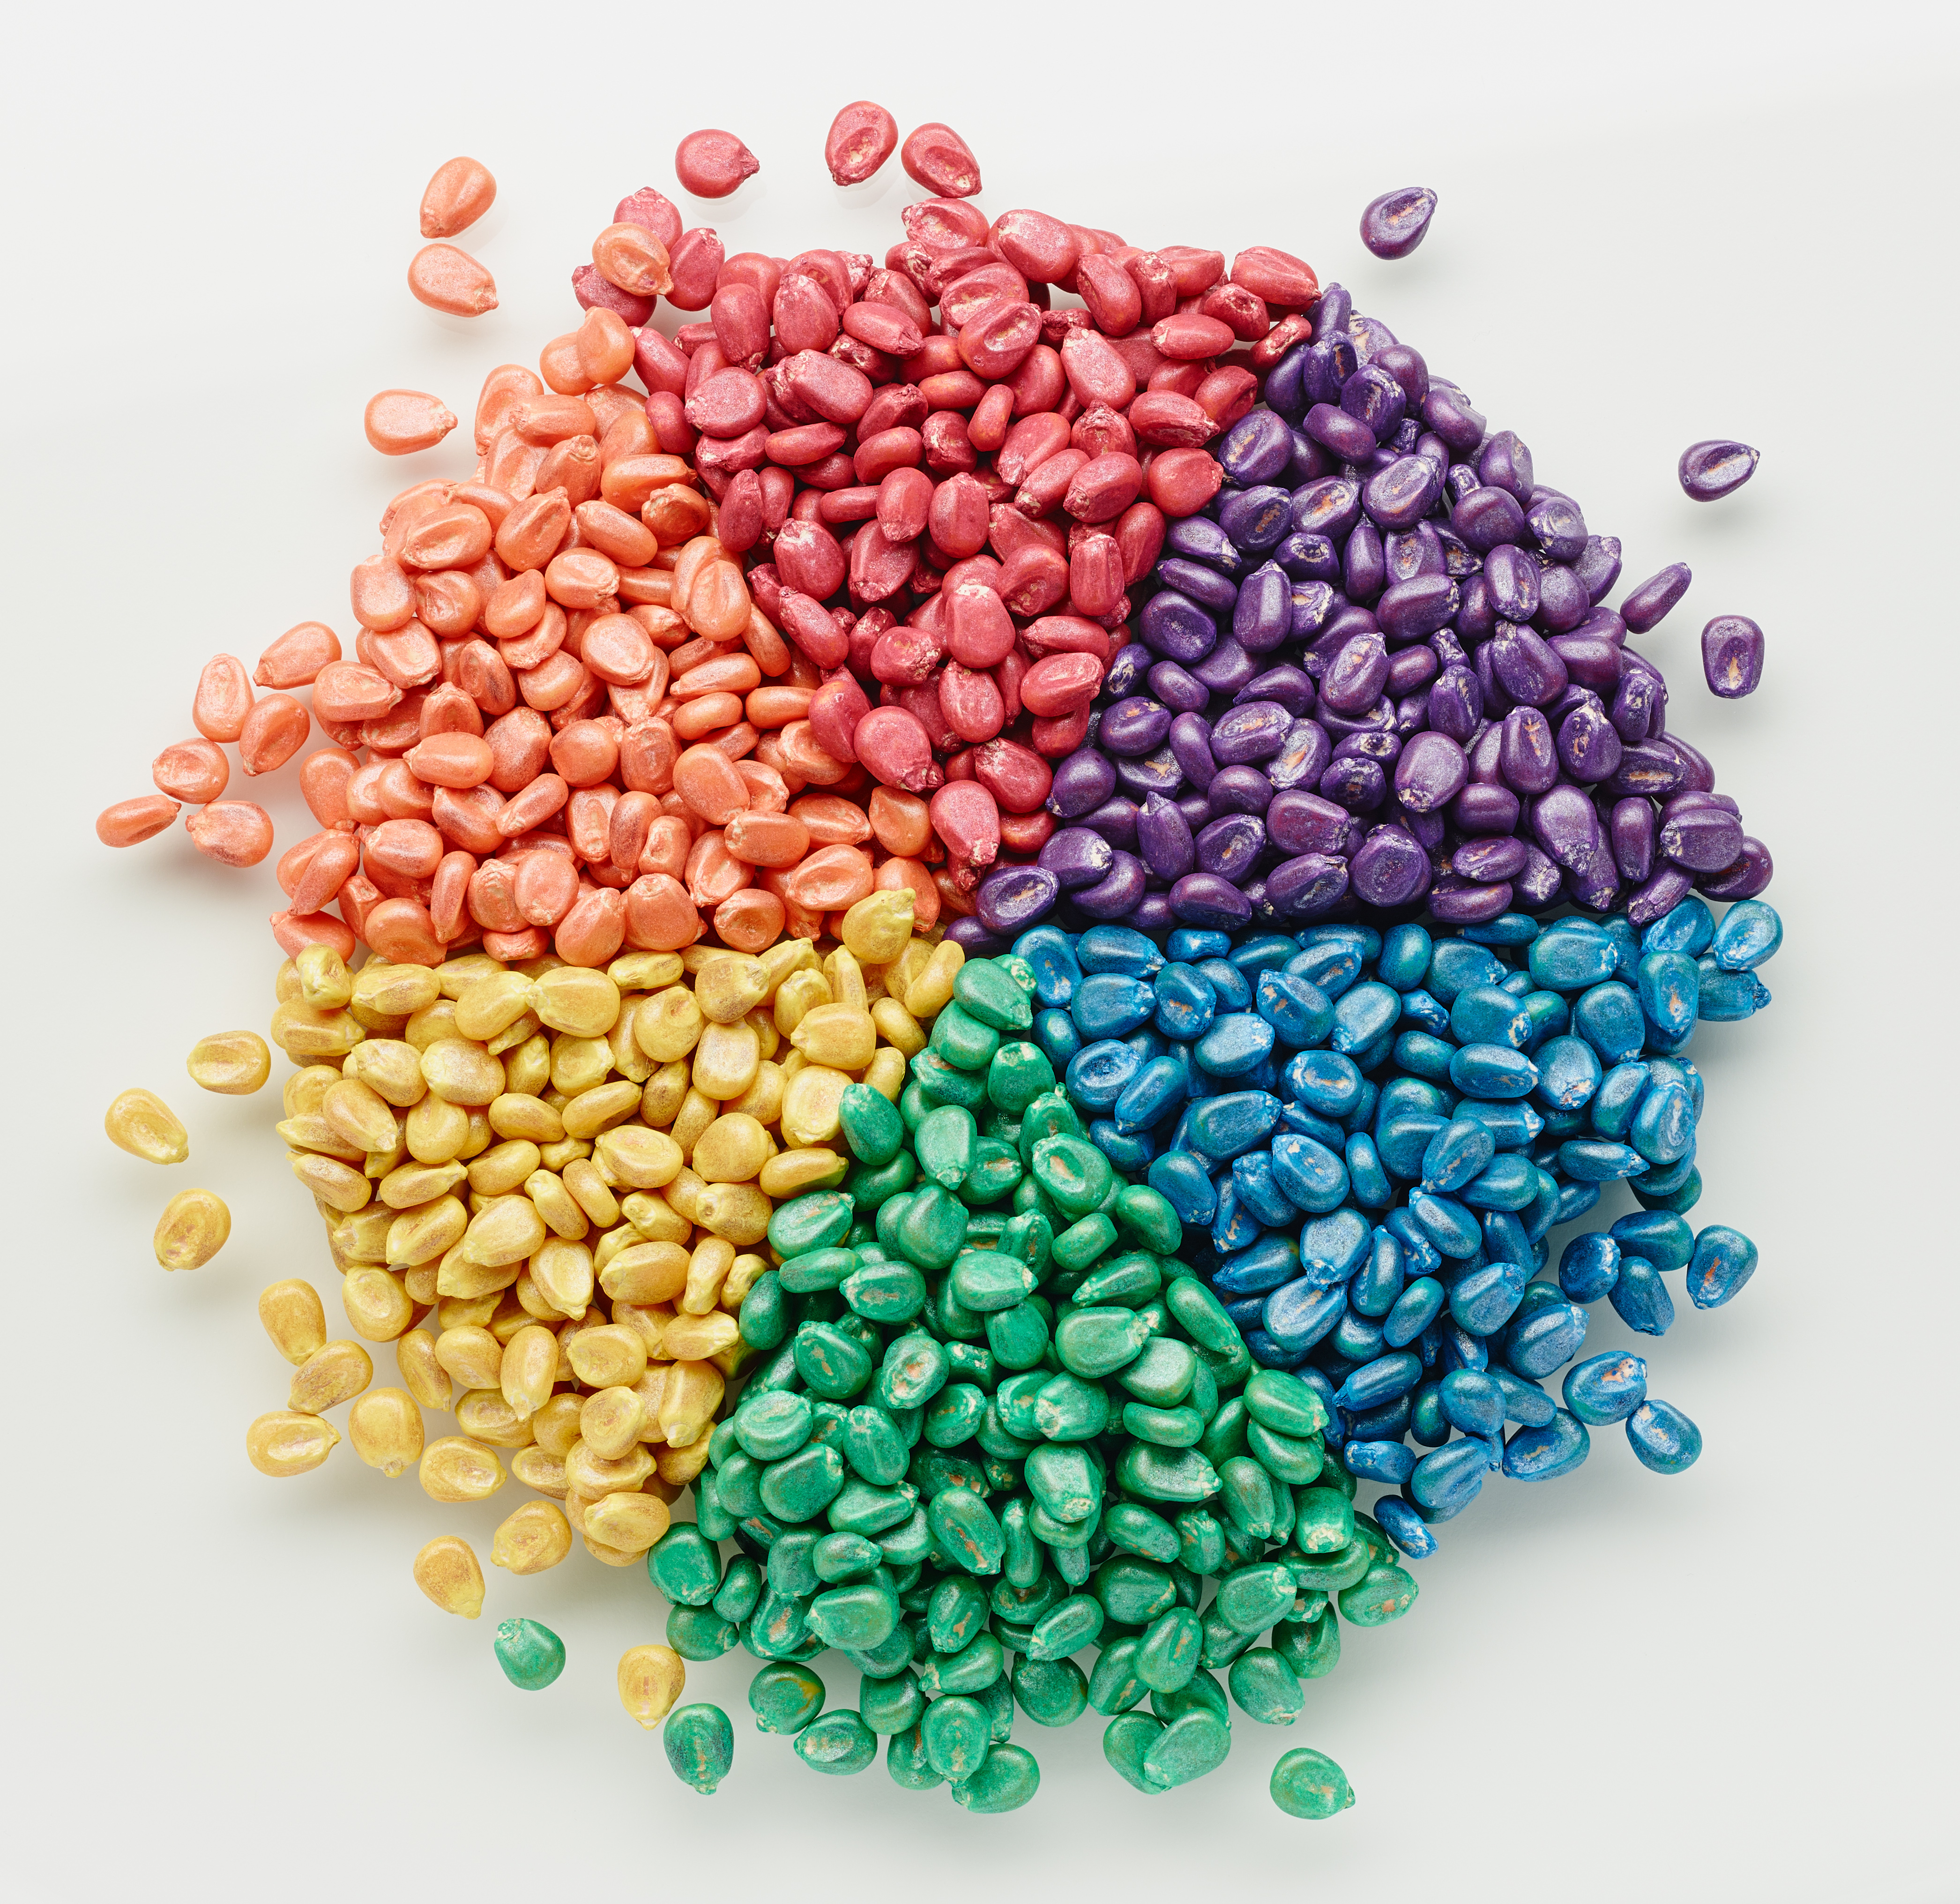 Clariant offers pigment powders and pigment preparations for